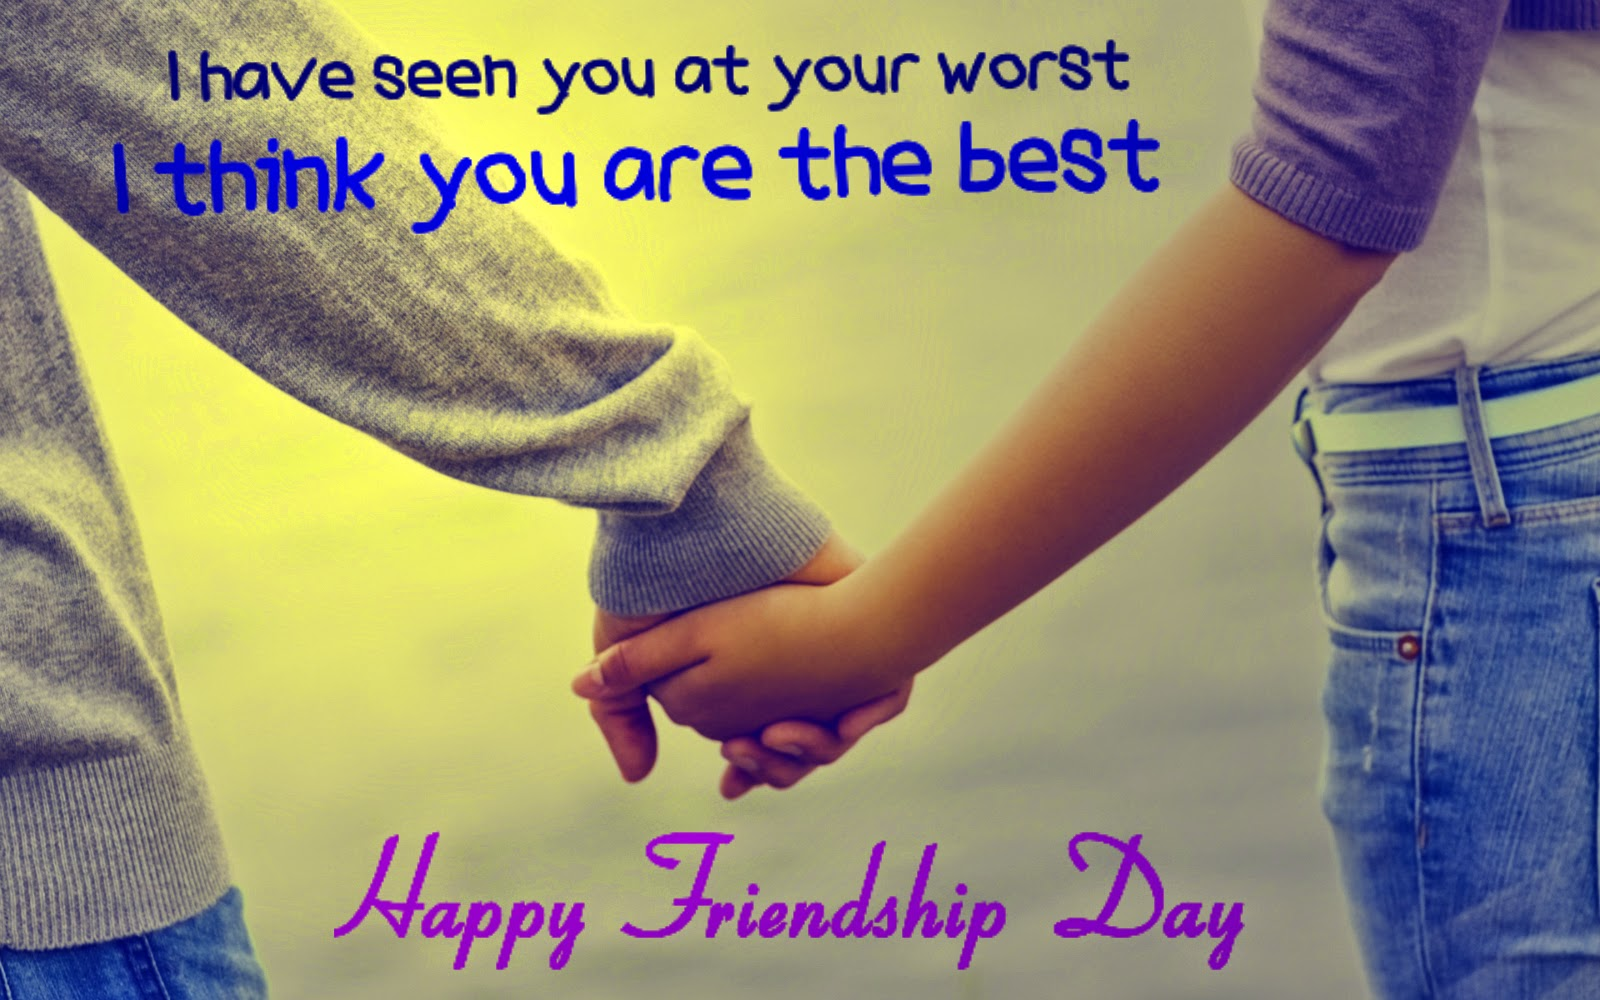 Friendship Day Wishes Wallpaper